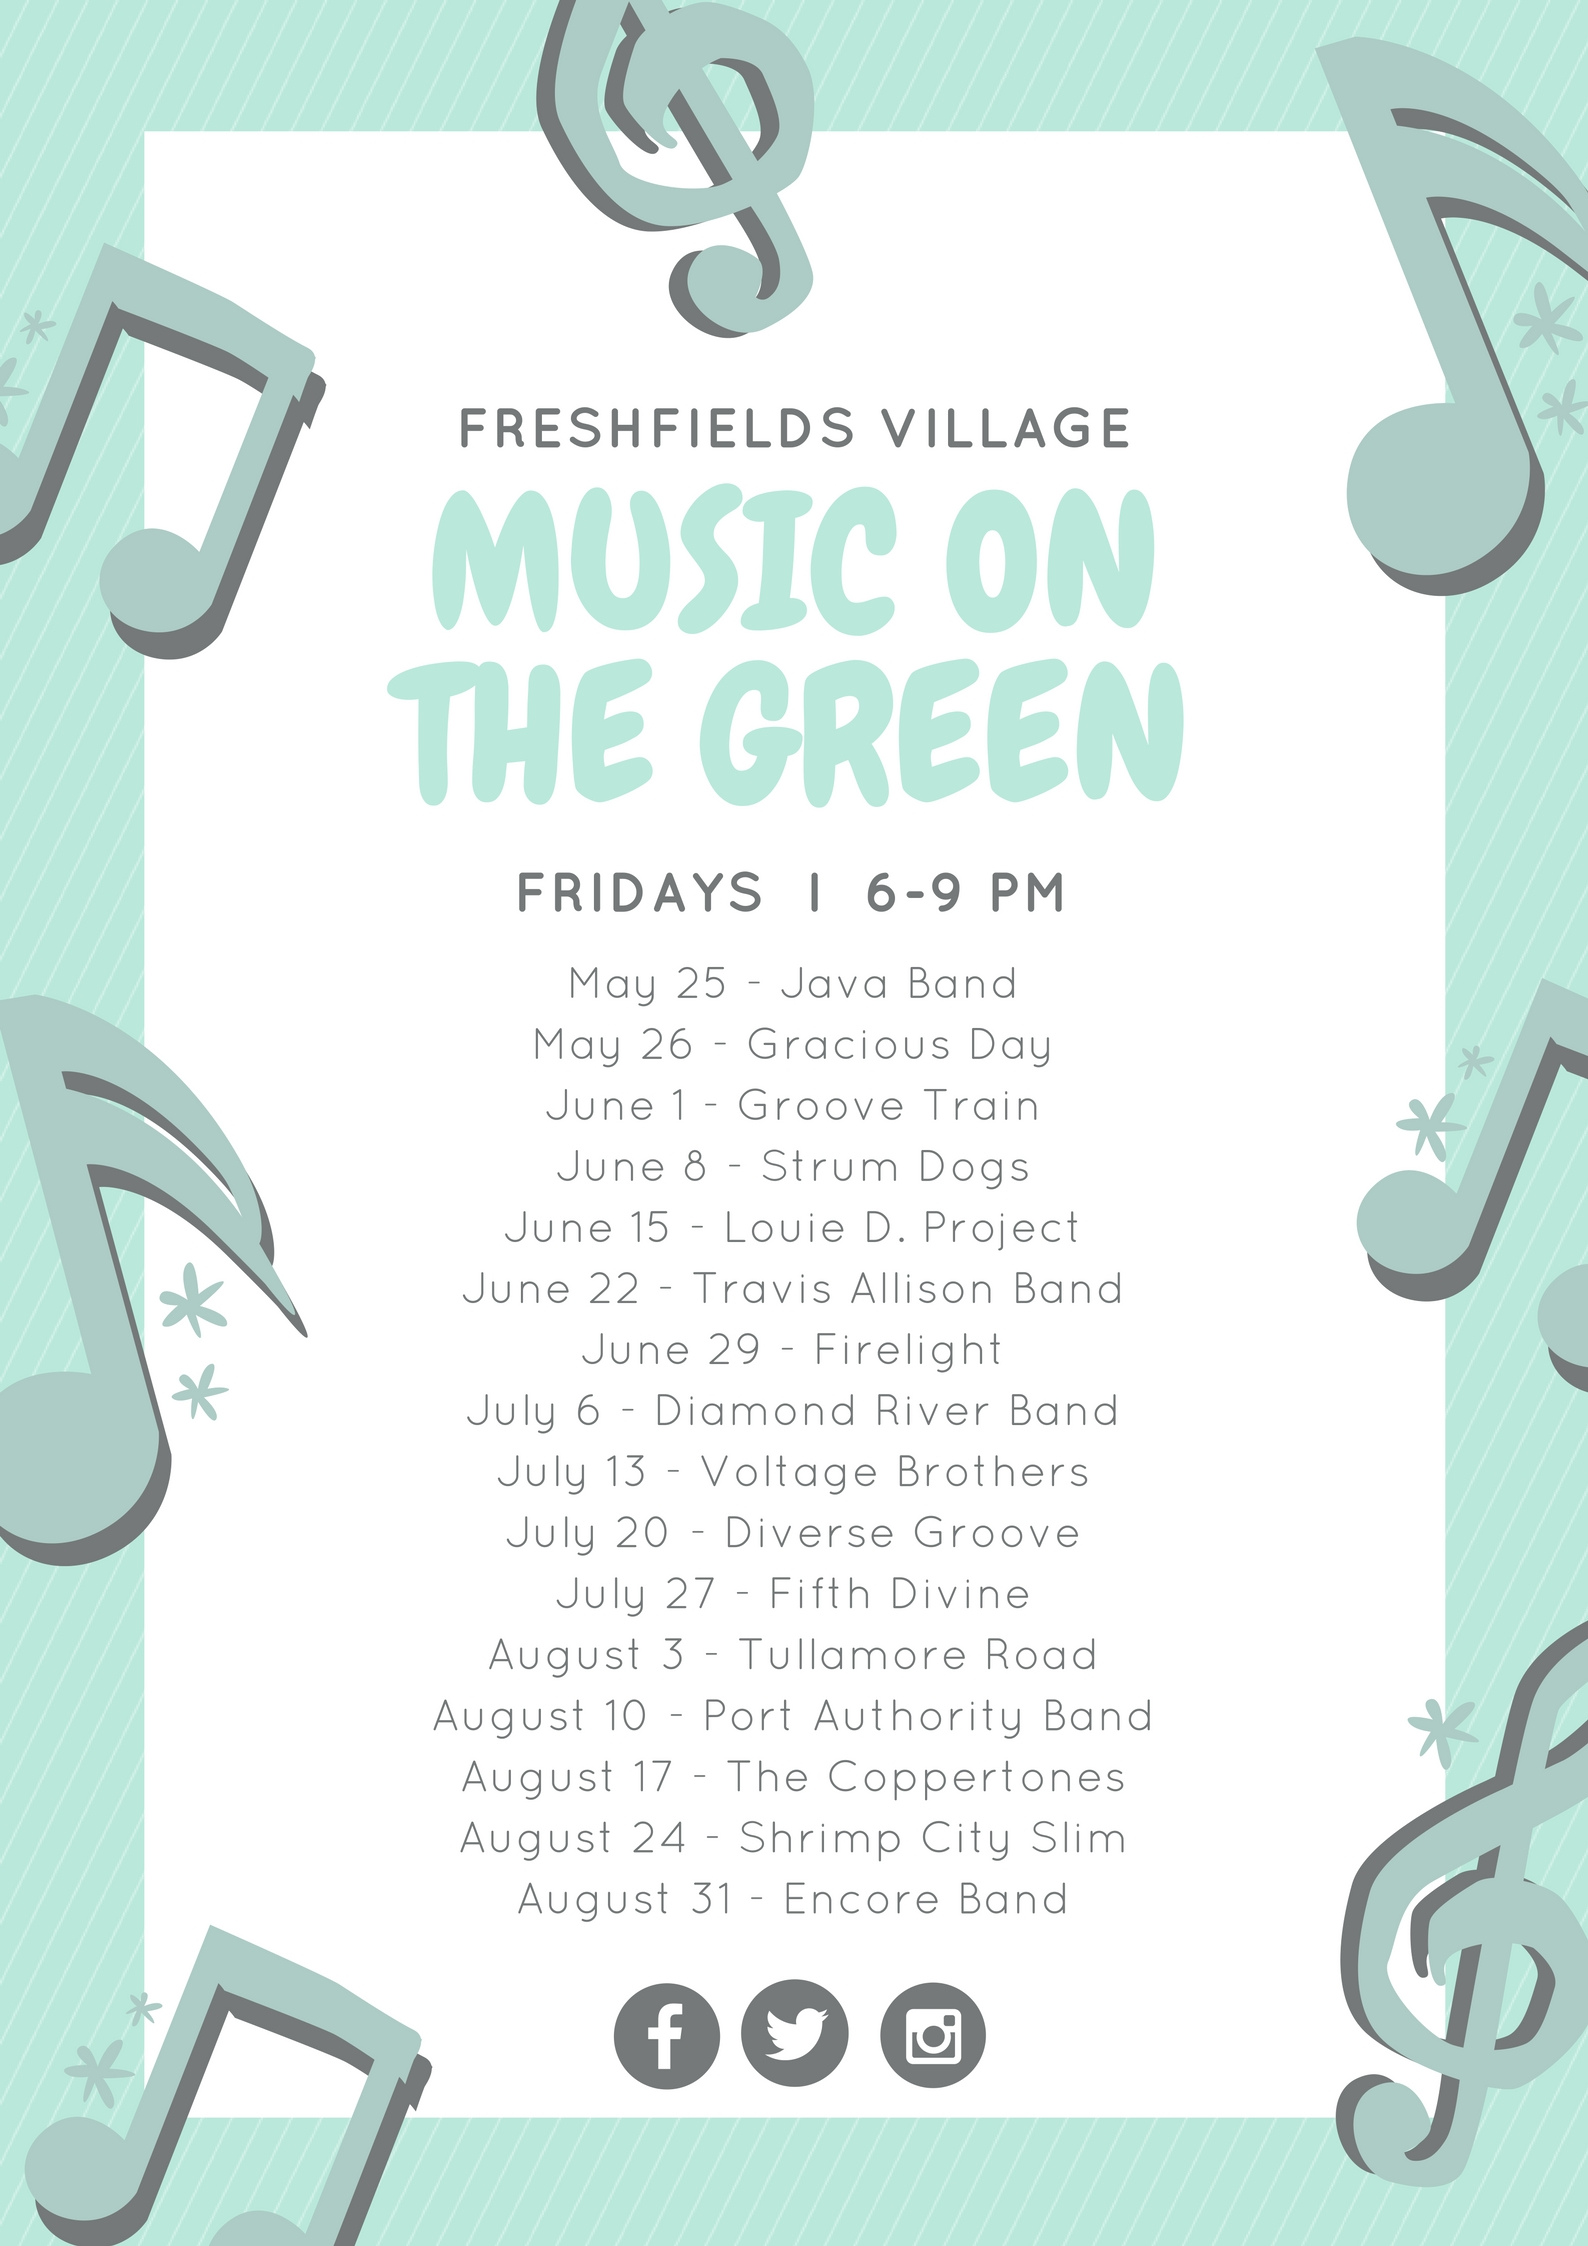 MusicontheGreenSchedule